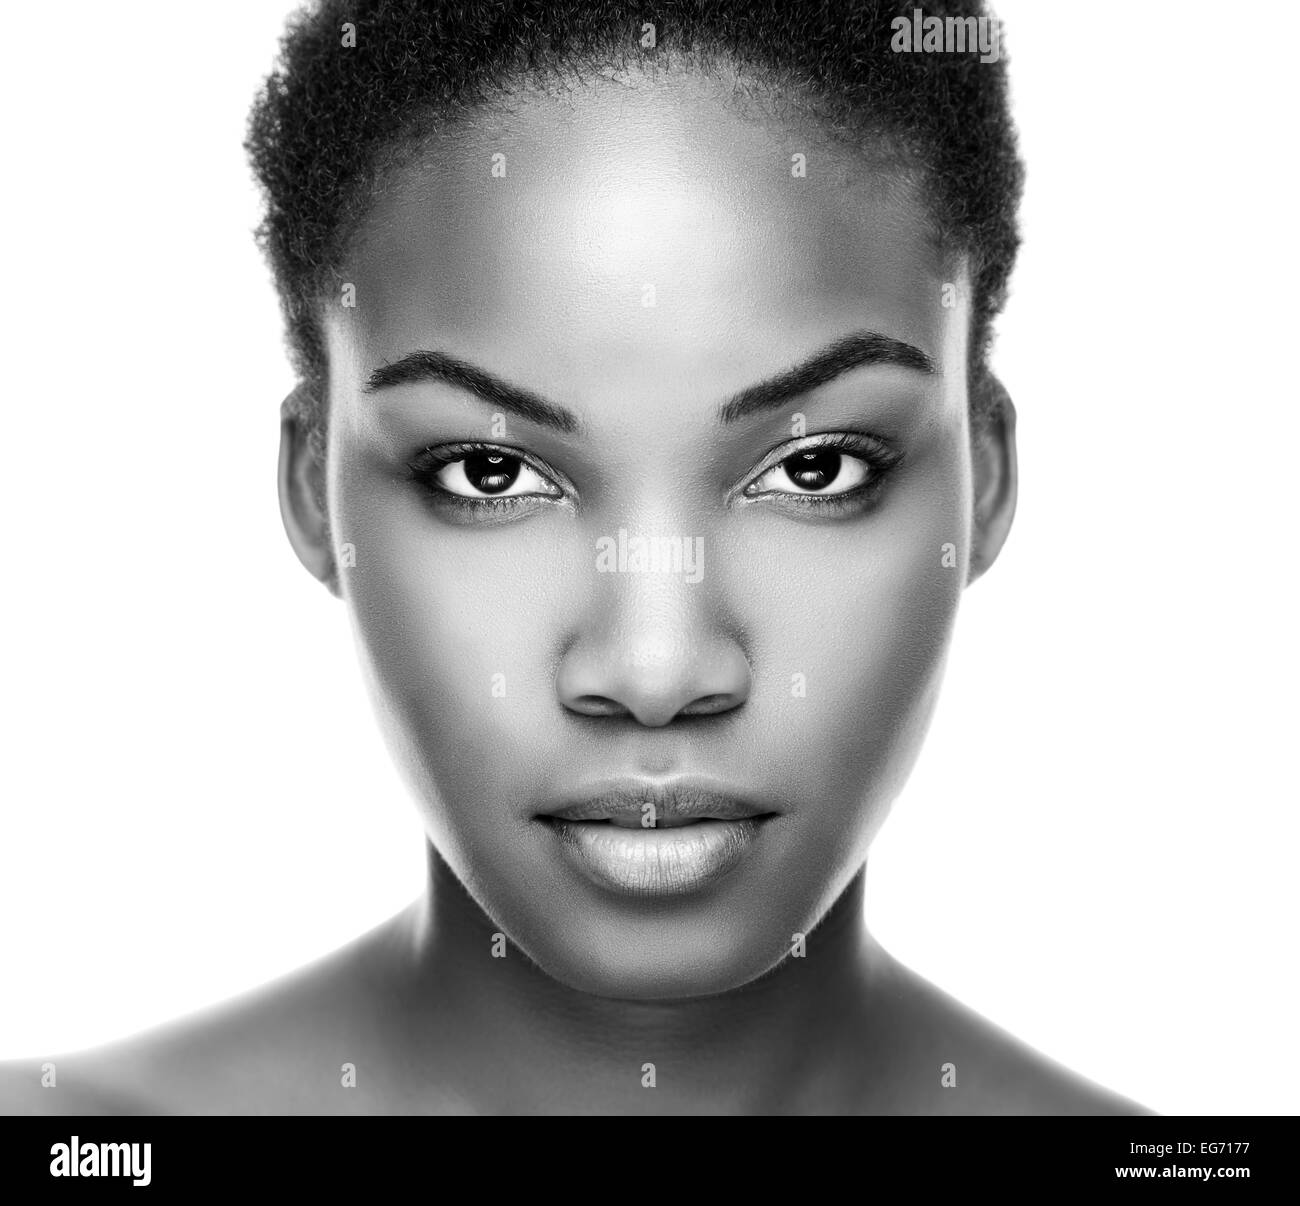 Face of an young black beauty in black and white - Stock Image